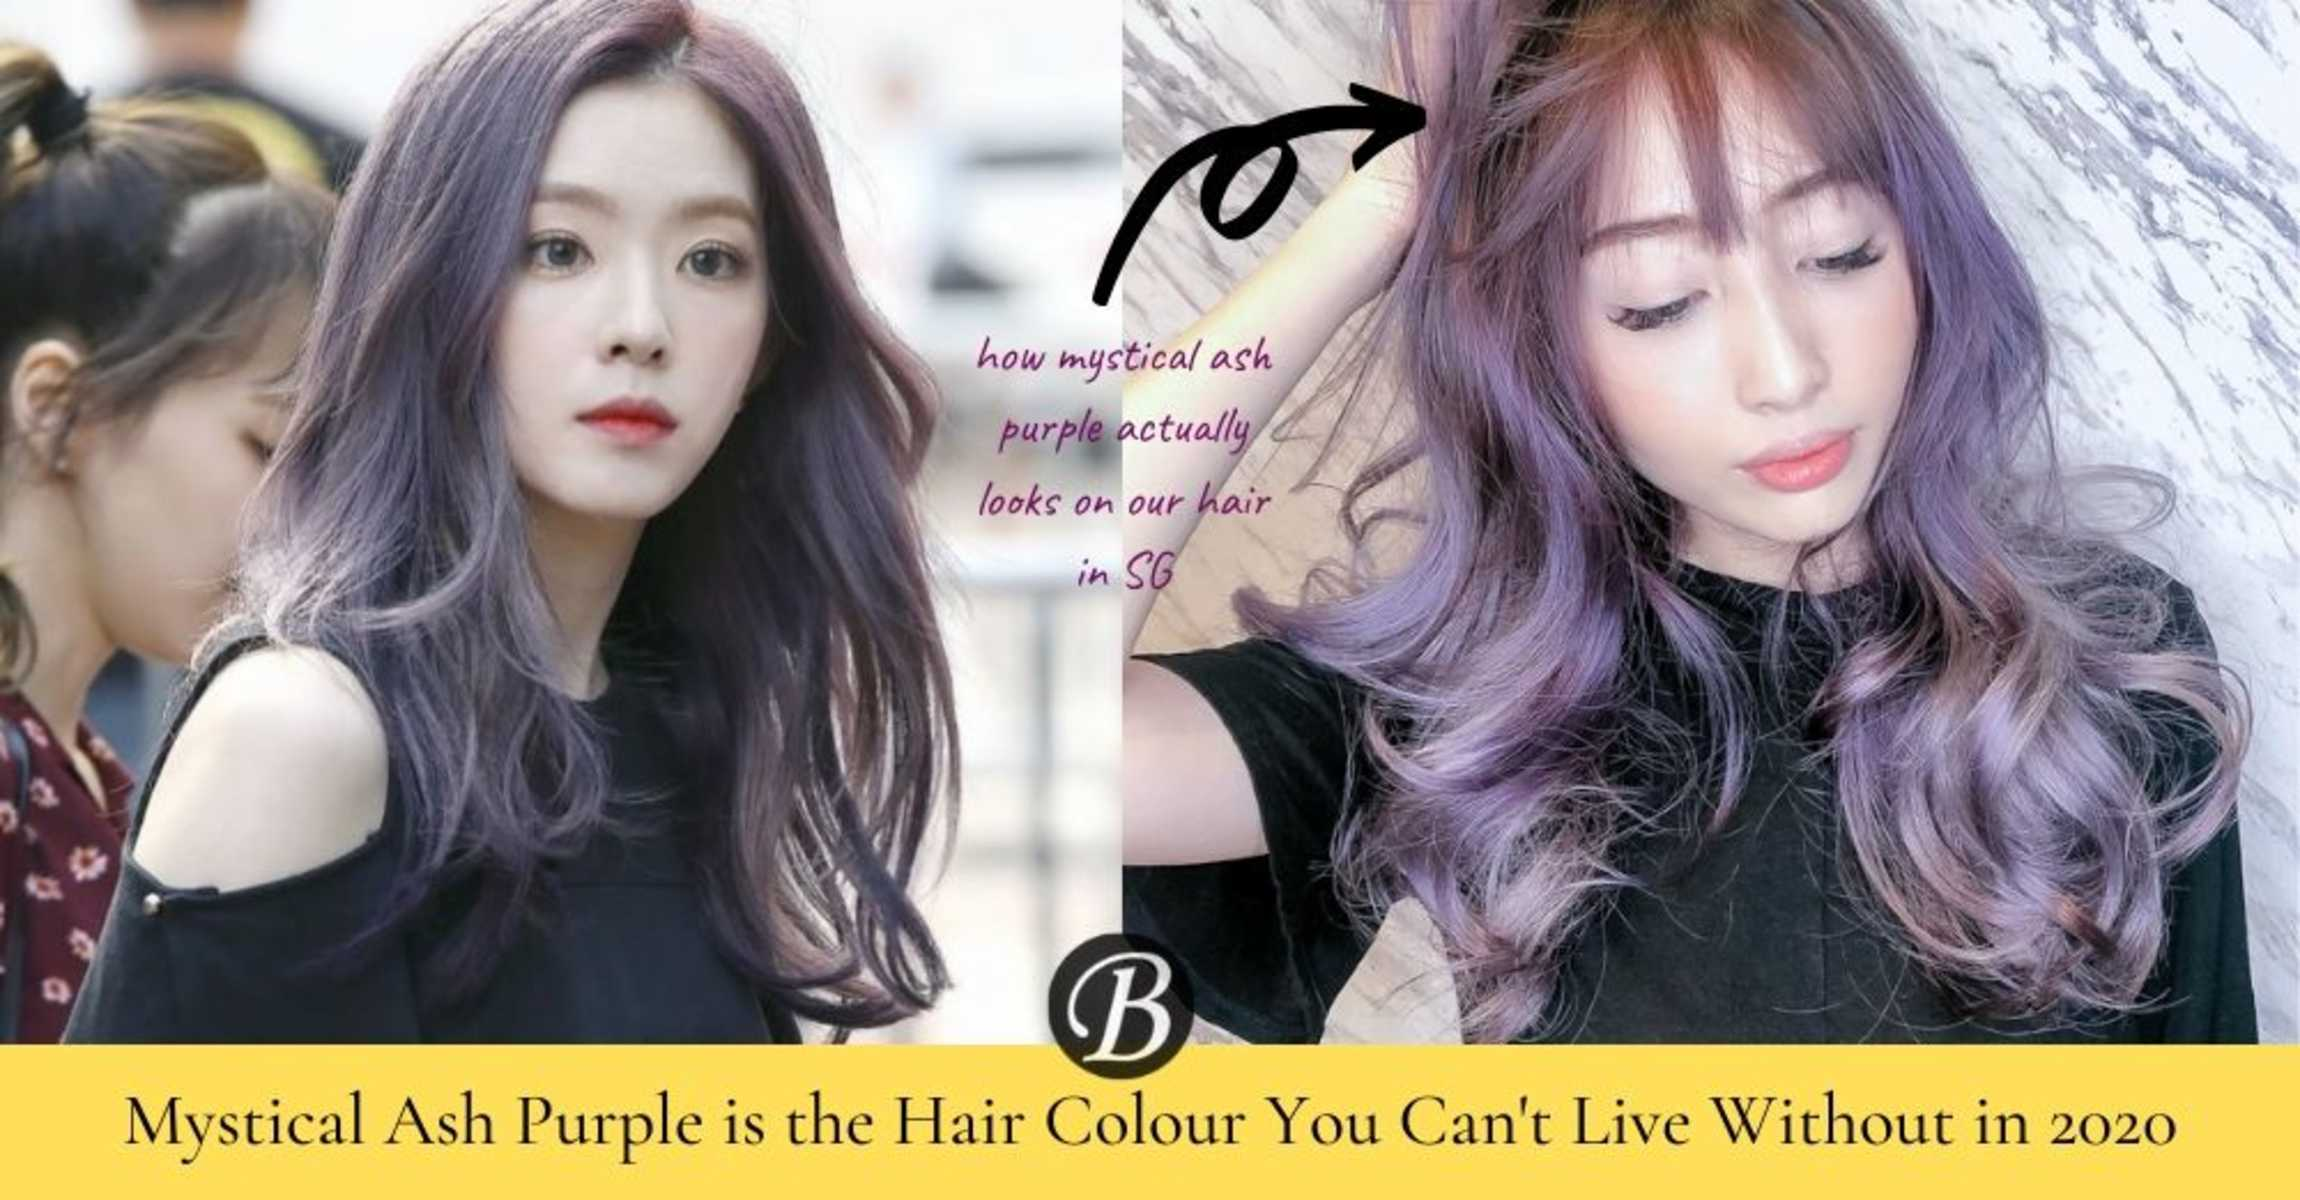 6 Reasons Why Mystical Ash Purple is the Bright Hair Colour Trending in 2020